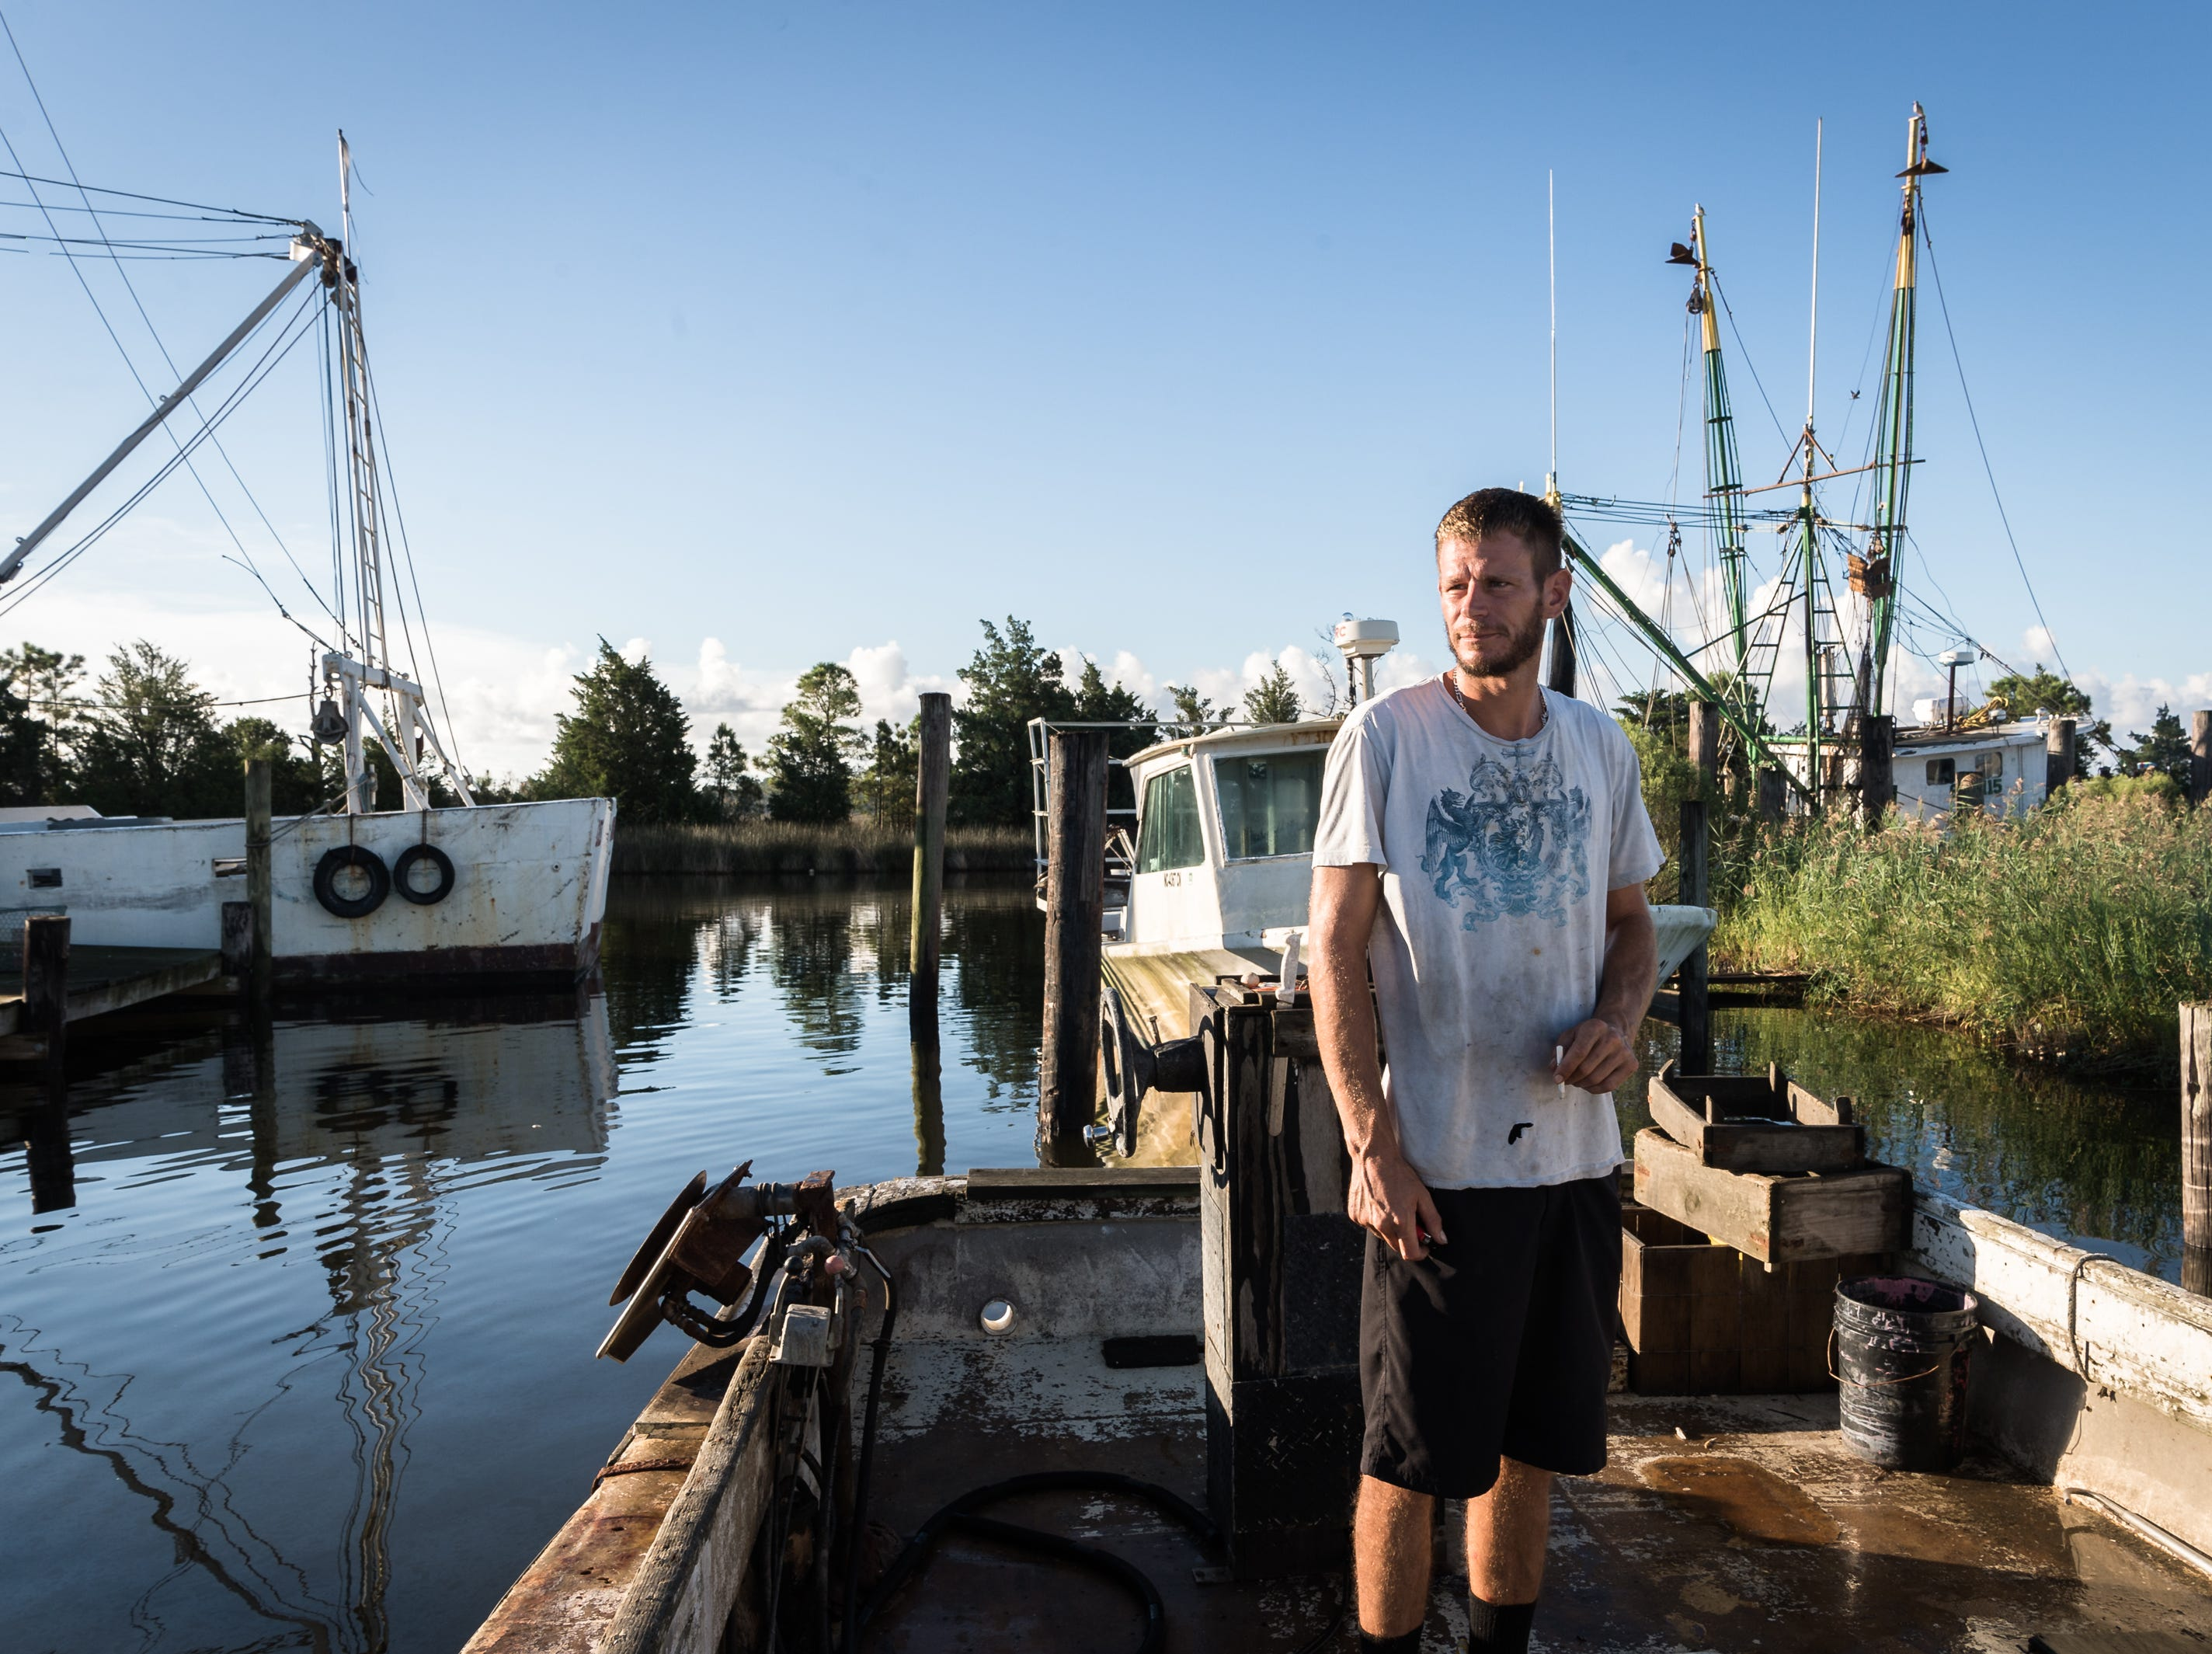 Dane Evans, a fisherman, 36, of Swan Quarter, works on his 31-year-old fishing boat, Captain Drew, named after his six-year-old son, in the Swan Quarter harbor Sept. 12, 2018. As Hurricane Florence moves in, a storm surge of about three to six feet is expected for Swan Quarter, and around six feet for Ocracoke Island with 12-20 inches of rainfall for the entire area. Hyde county as well as several surrounding counties are under mandatory evacuation. Evans will be traveling to Washington, NC to stay with his girlfriend during the hurricane.